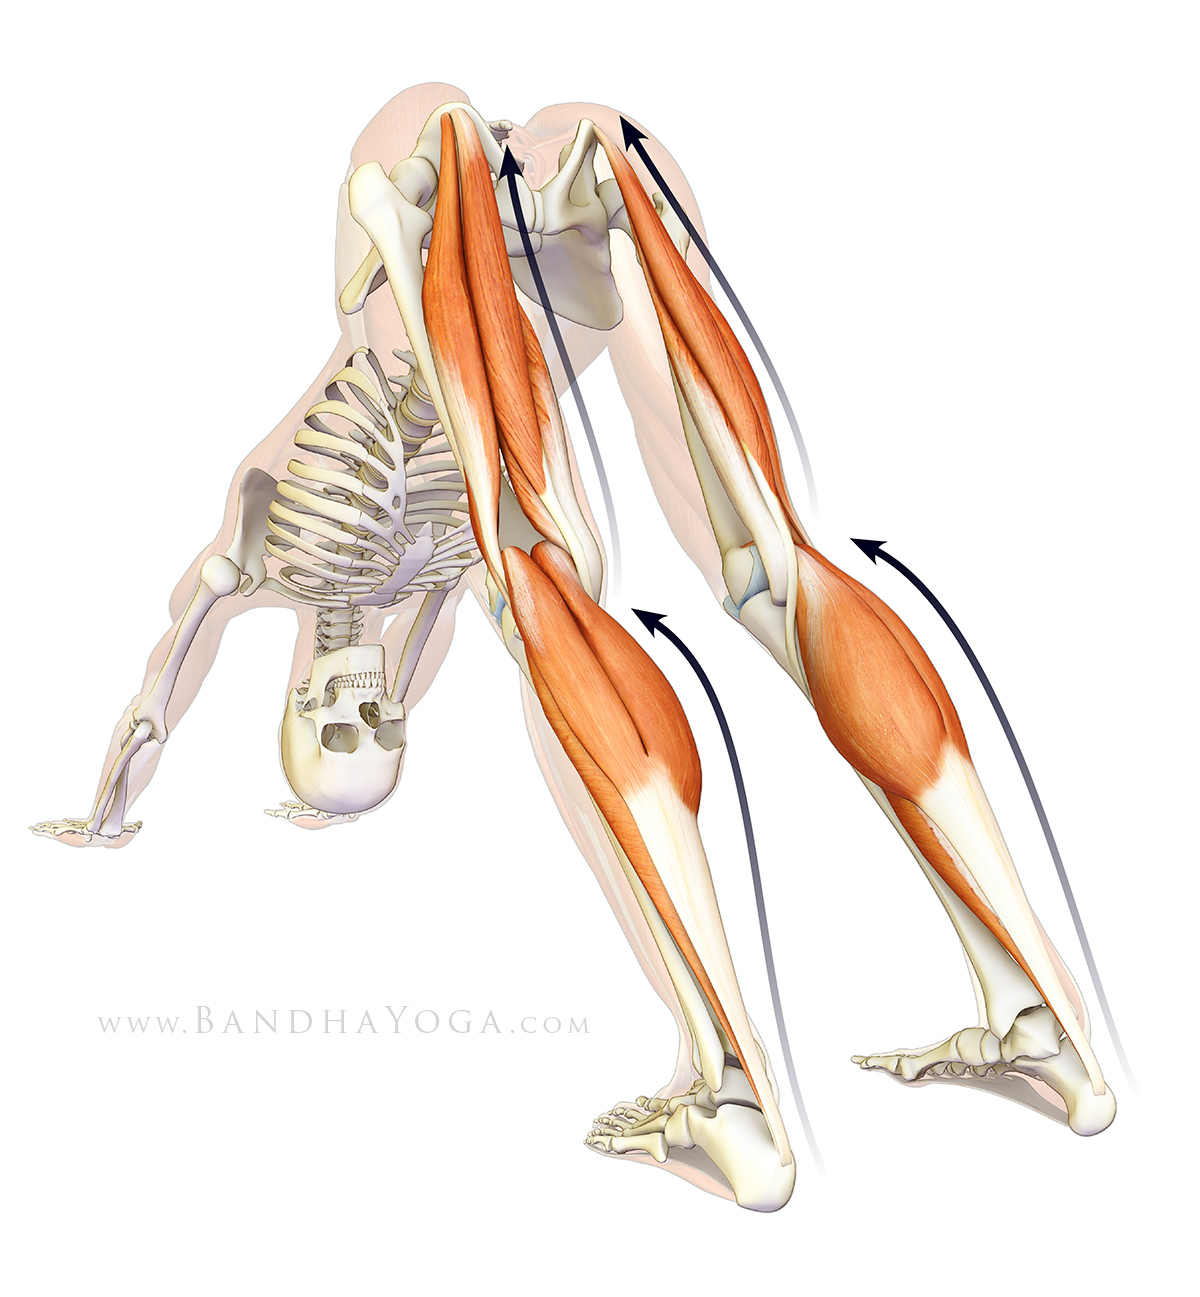 The Daily Bandha: Plantar Fasciitis, Myofascial Connections and Yoga